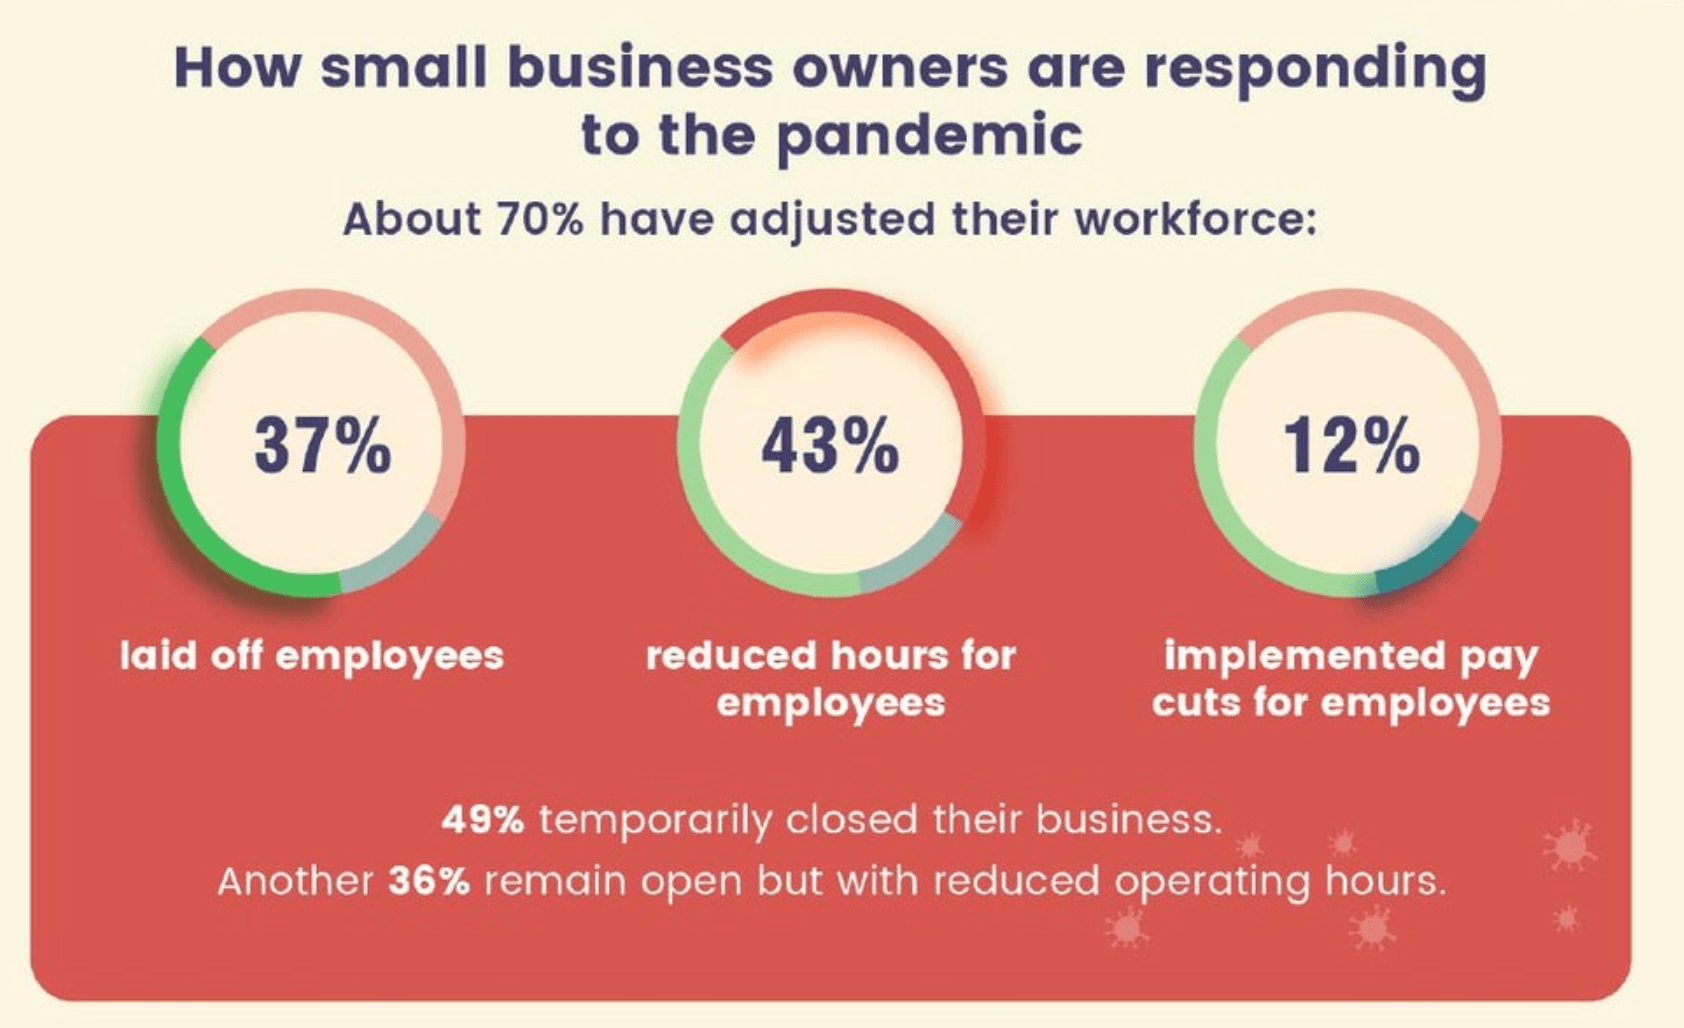 smallbusinessownerspandemicresponse